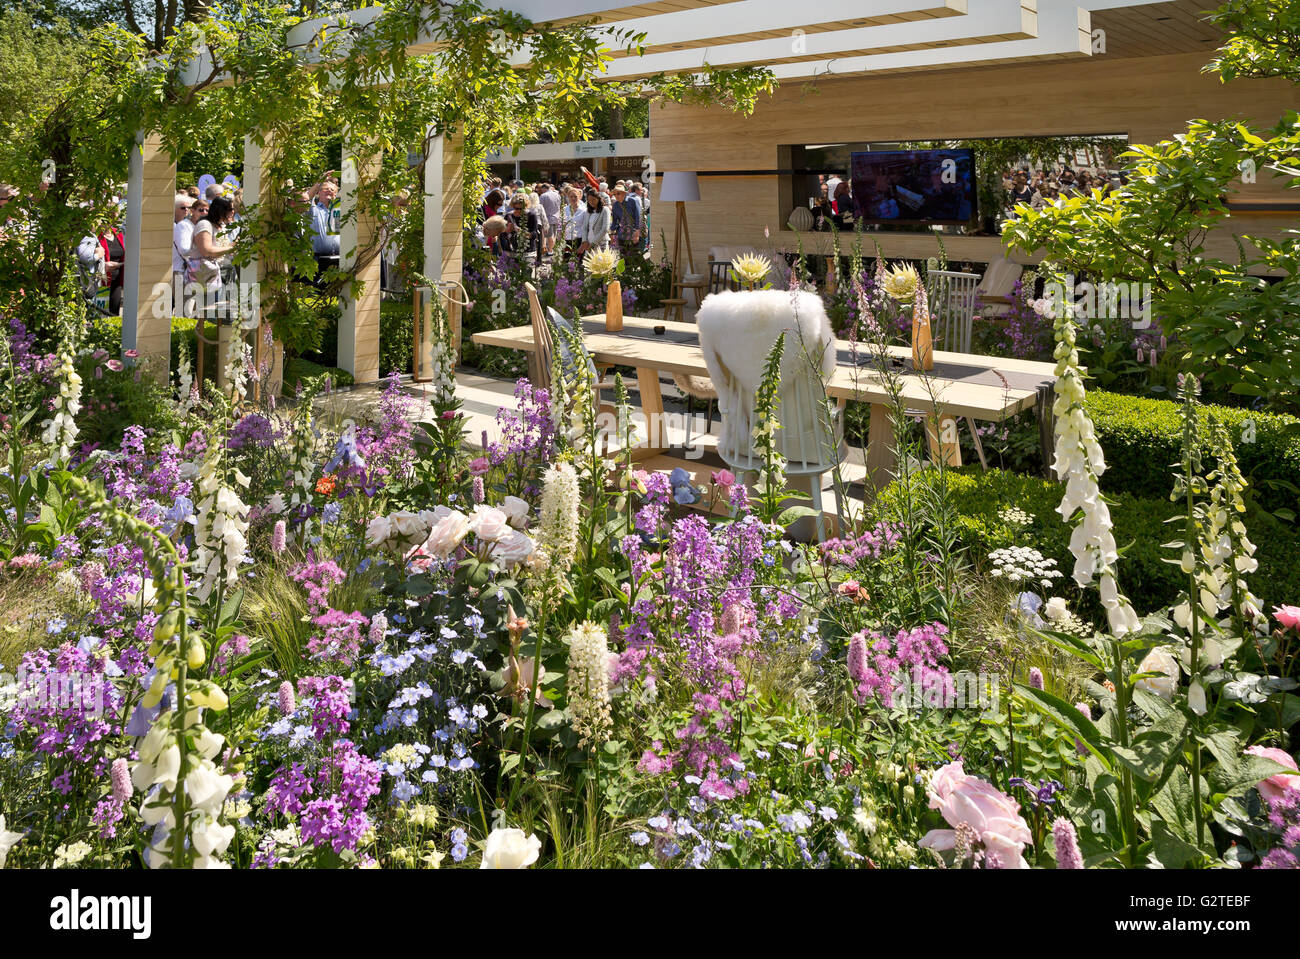 Rhs chelsea flower show 2016 the lg smart garden silver gilt medal stock photo royalty free - Chelsea flower show gold medal winners ...